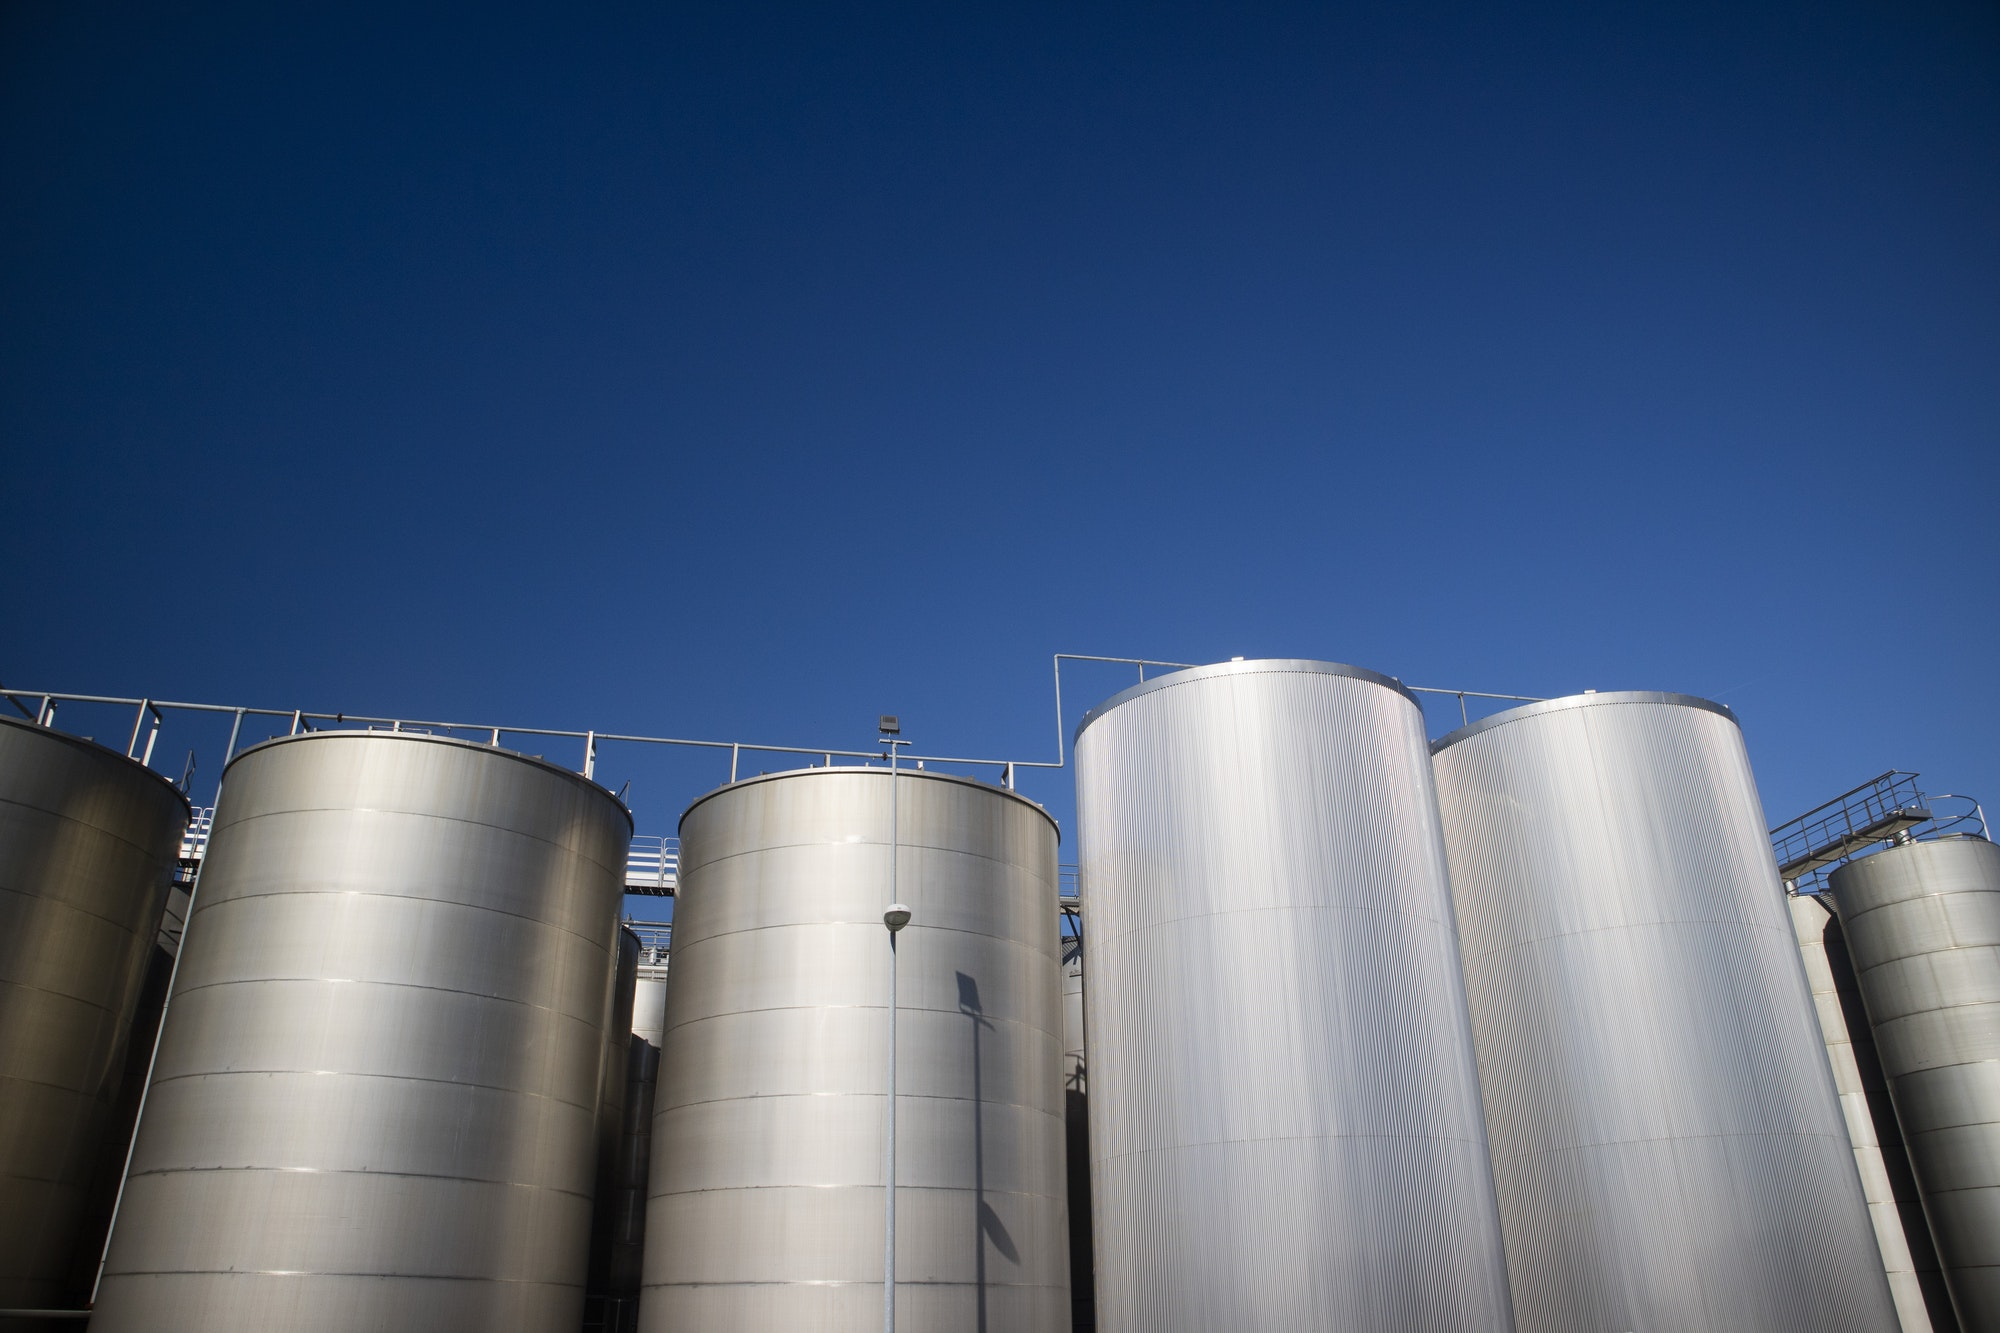 Organizational Silos – Divide and Conquer or Unite and Build?